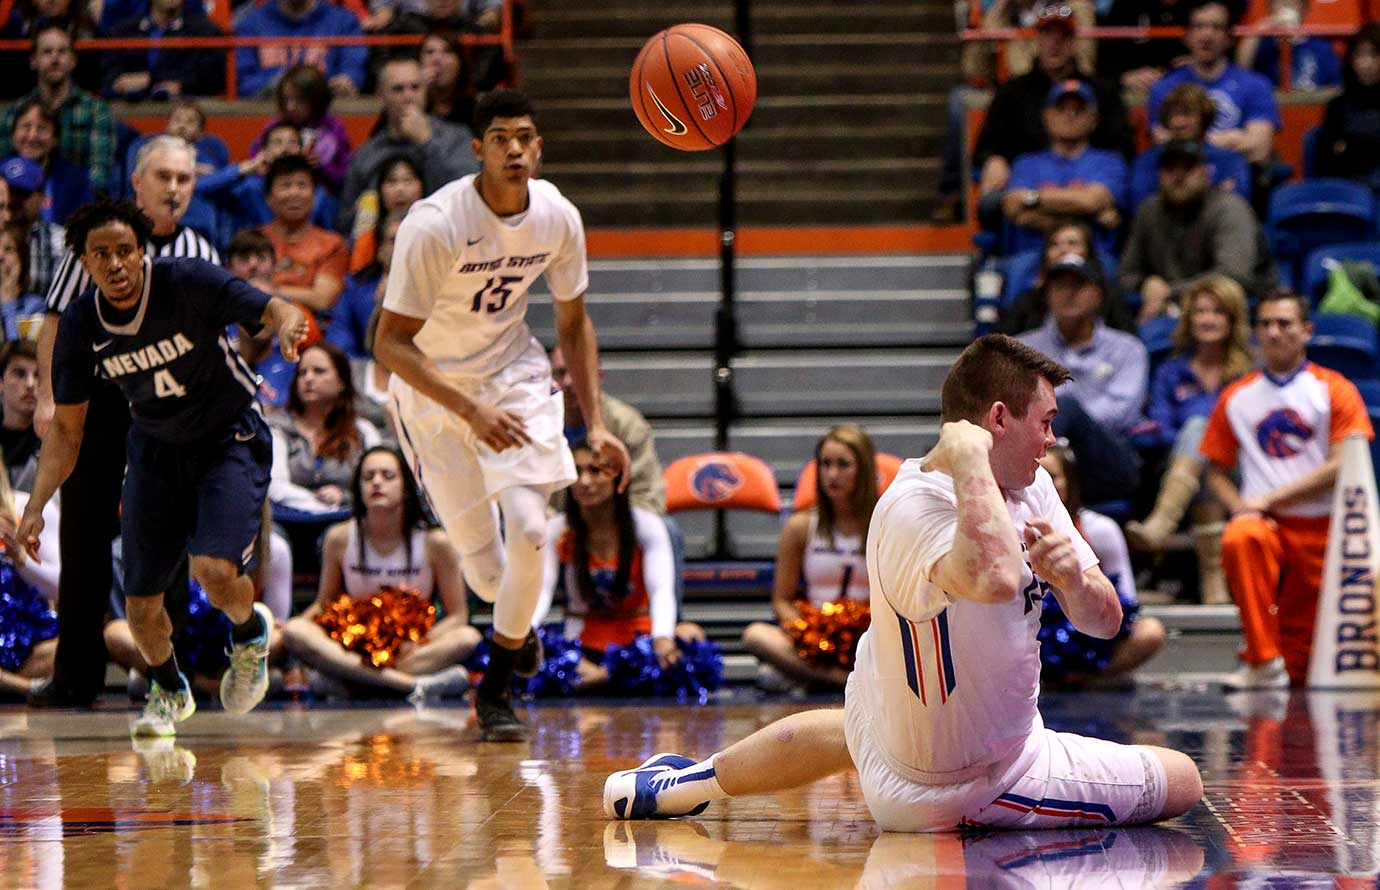 Nick Duncan of Boise State saves a loose ball during a 76-57 win over Nevada.